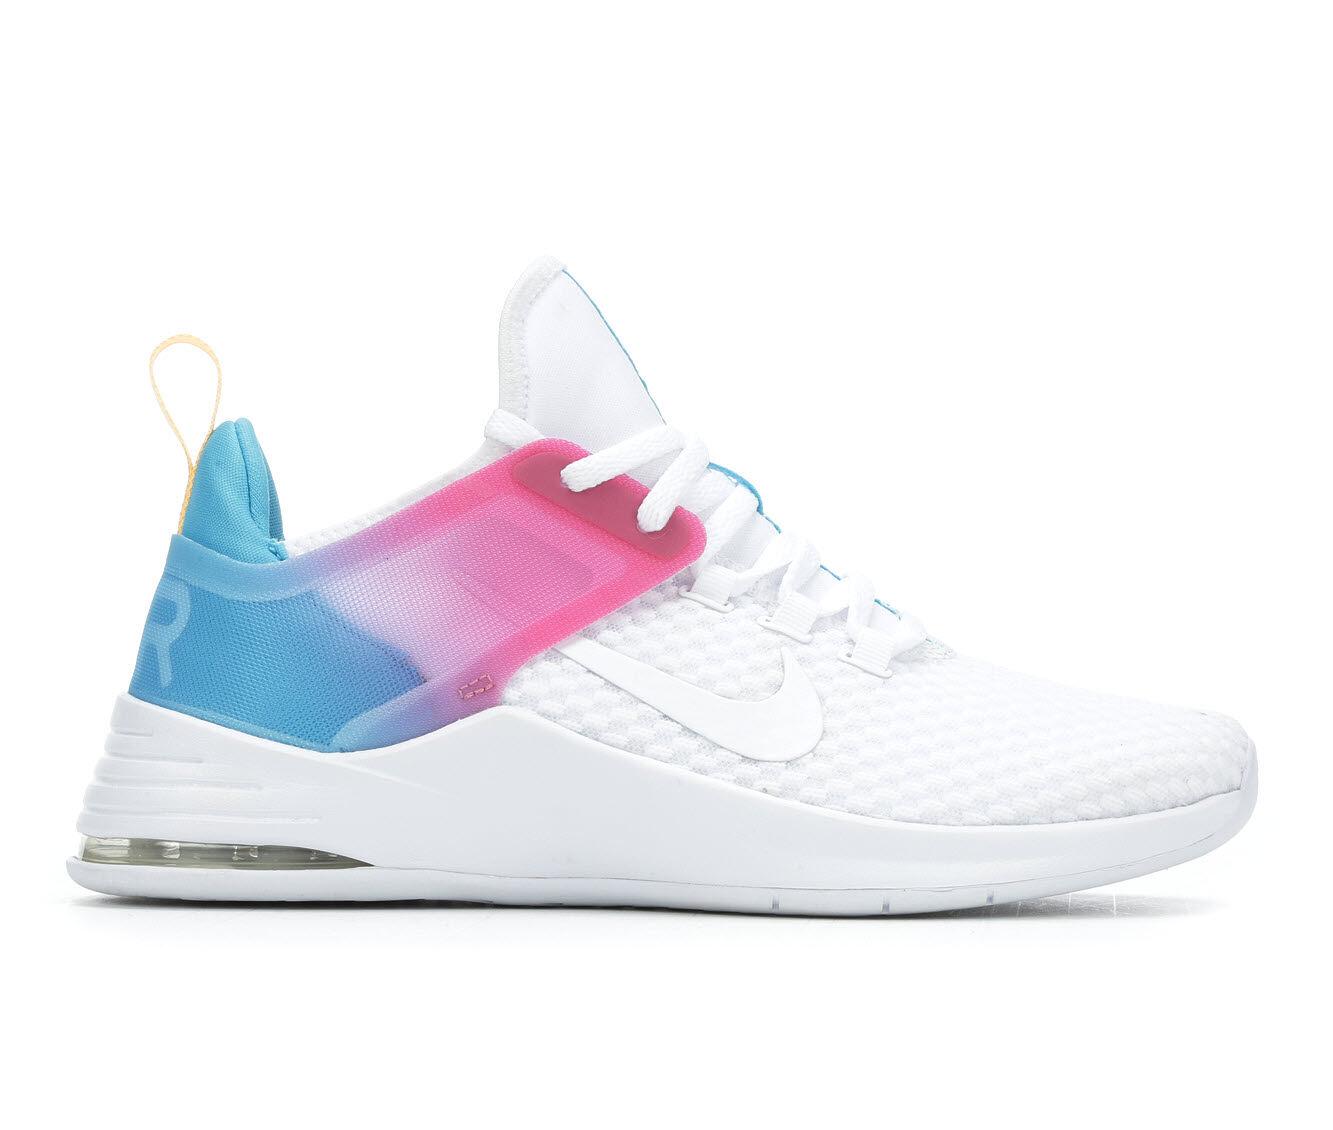 Women's Nike Air Bella TR 2 Training Shoes White/Blue/Pink